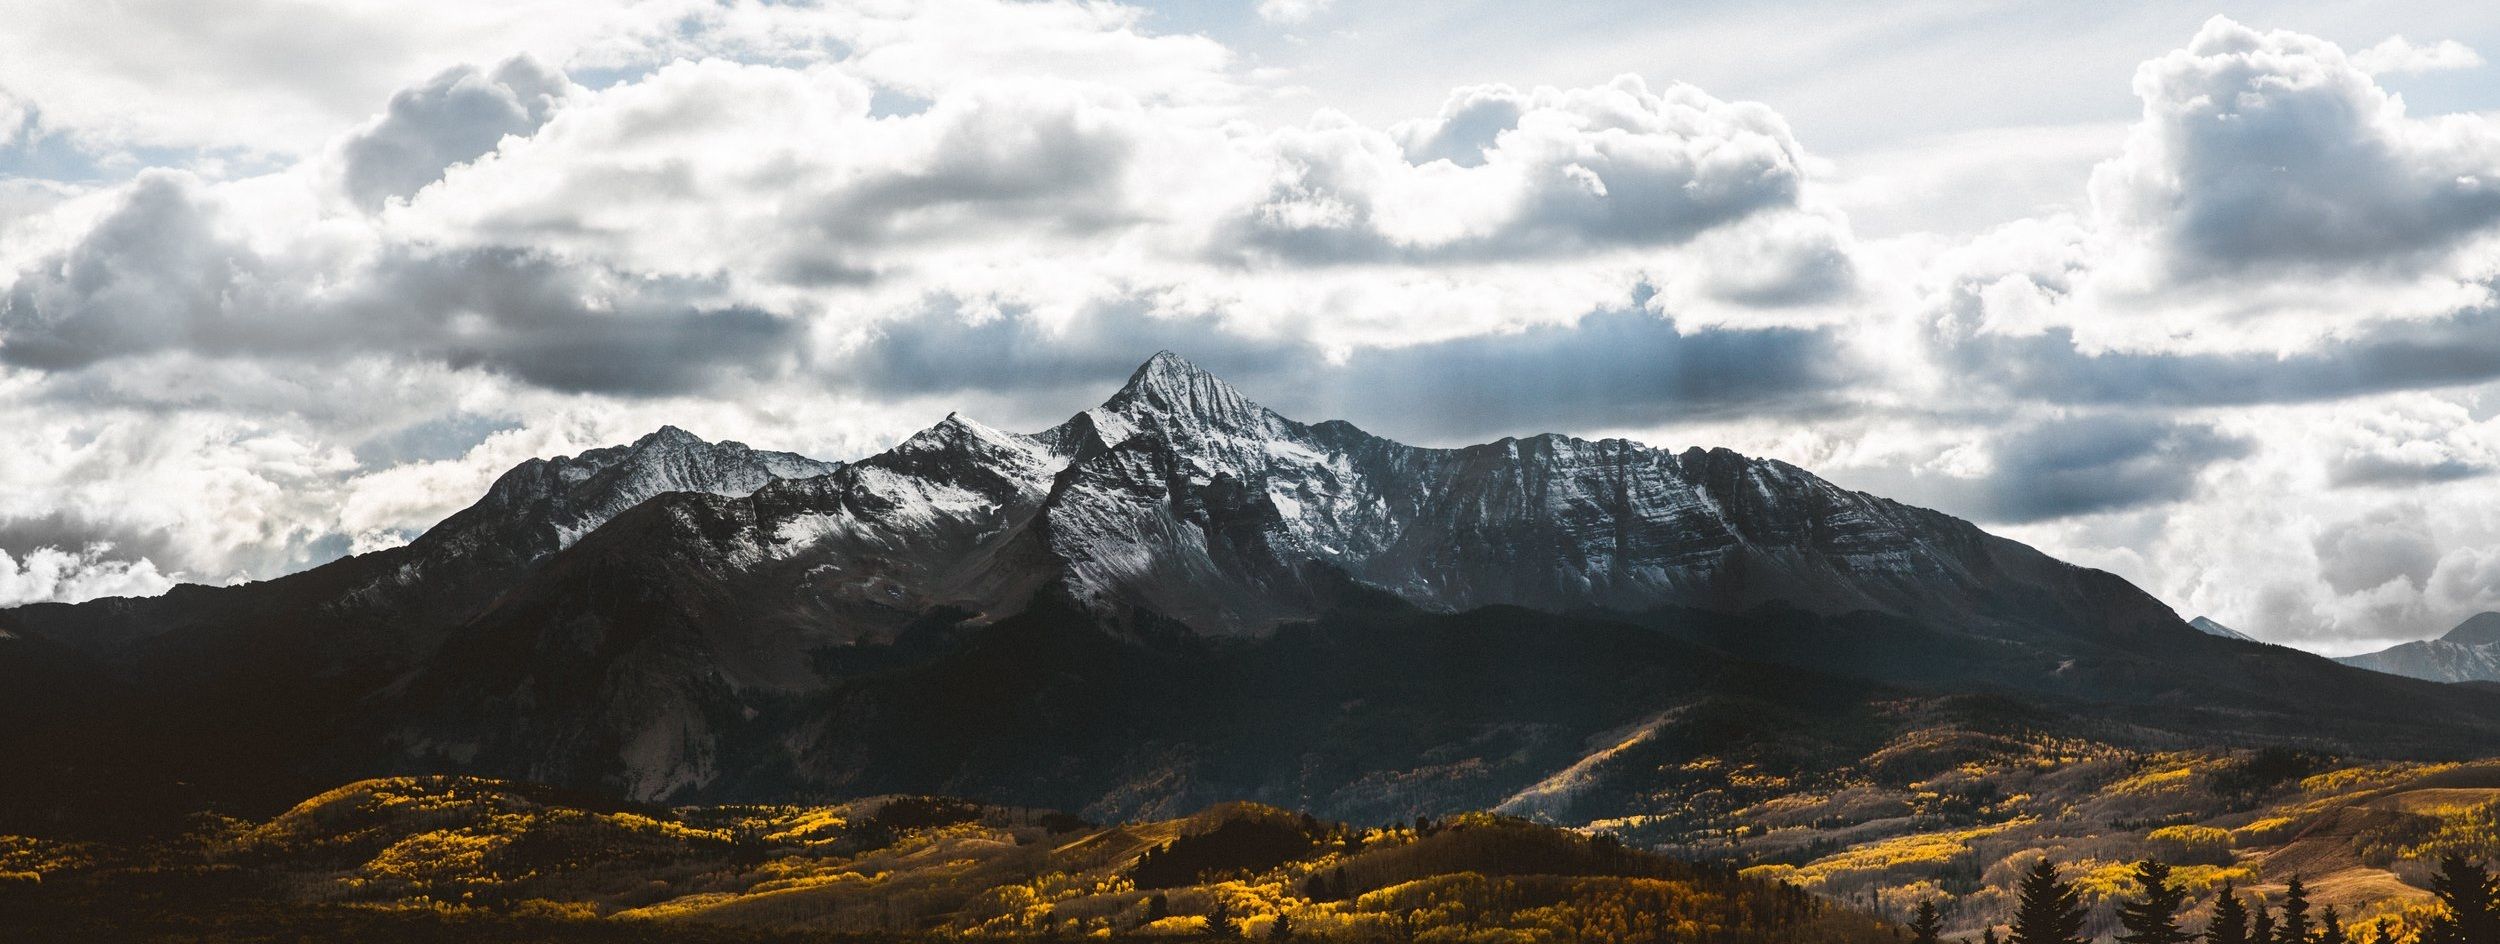 Colorado+Mountain+Range